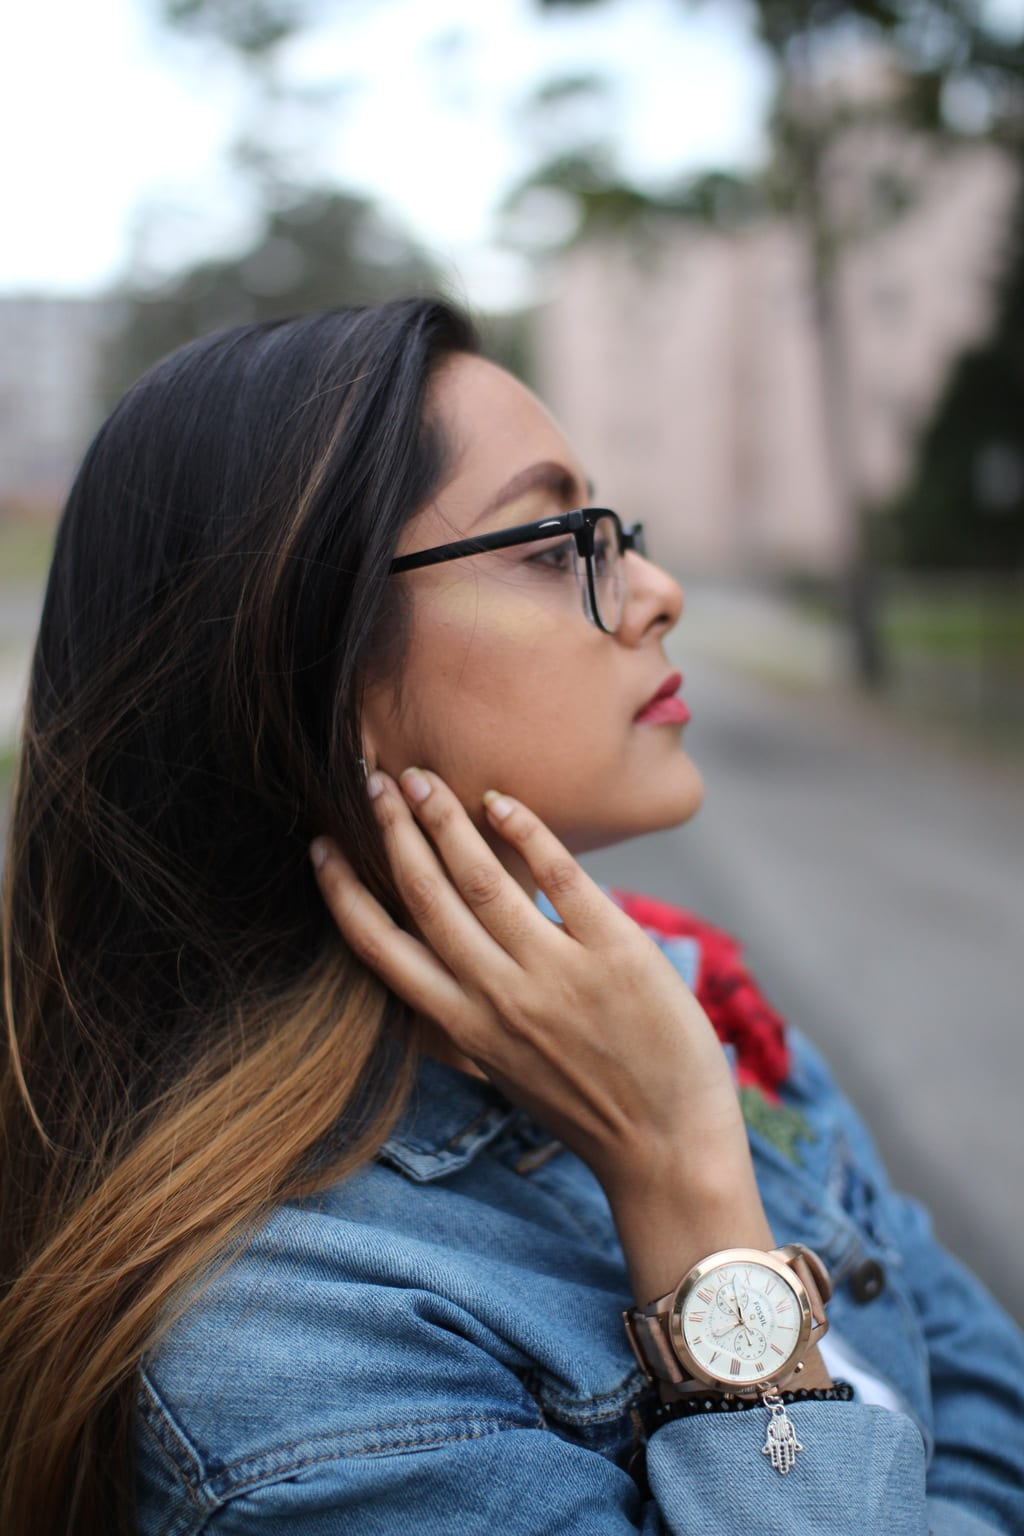 A University of Bridgeport student wears a large whitefaced, rosegold watch with a black beaded bracelet and an oversized denim embroidered jacket.